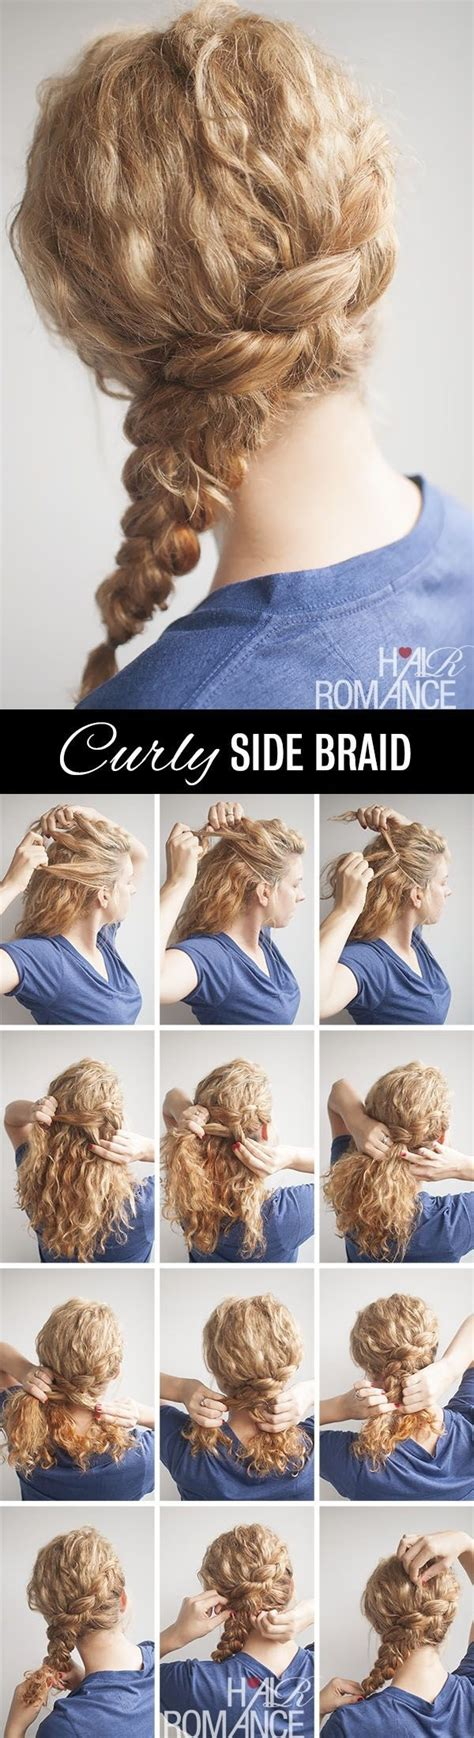 curly hairstyles tutorial 9 best indian hairstyles for curly hair styles at life